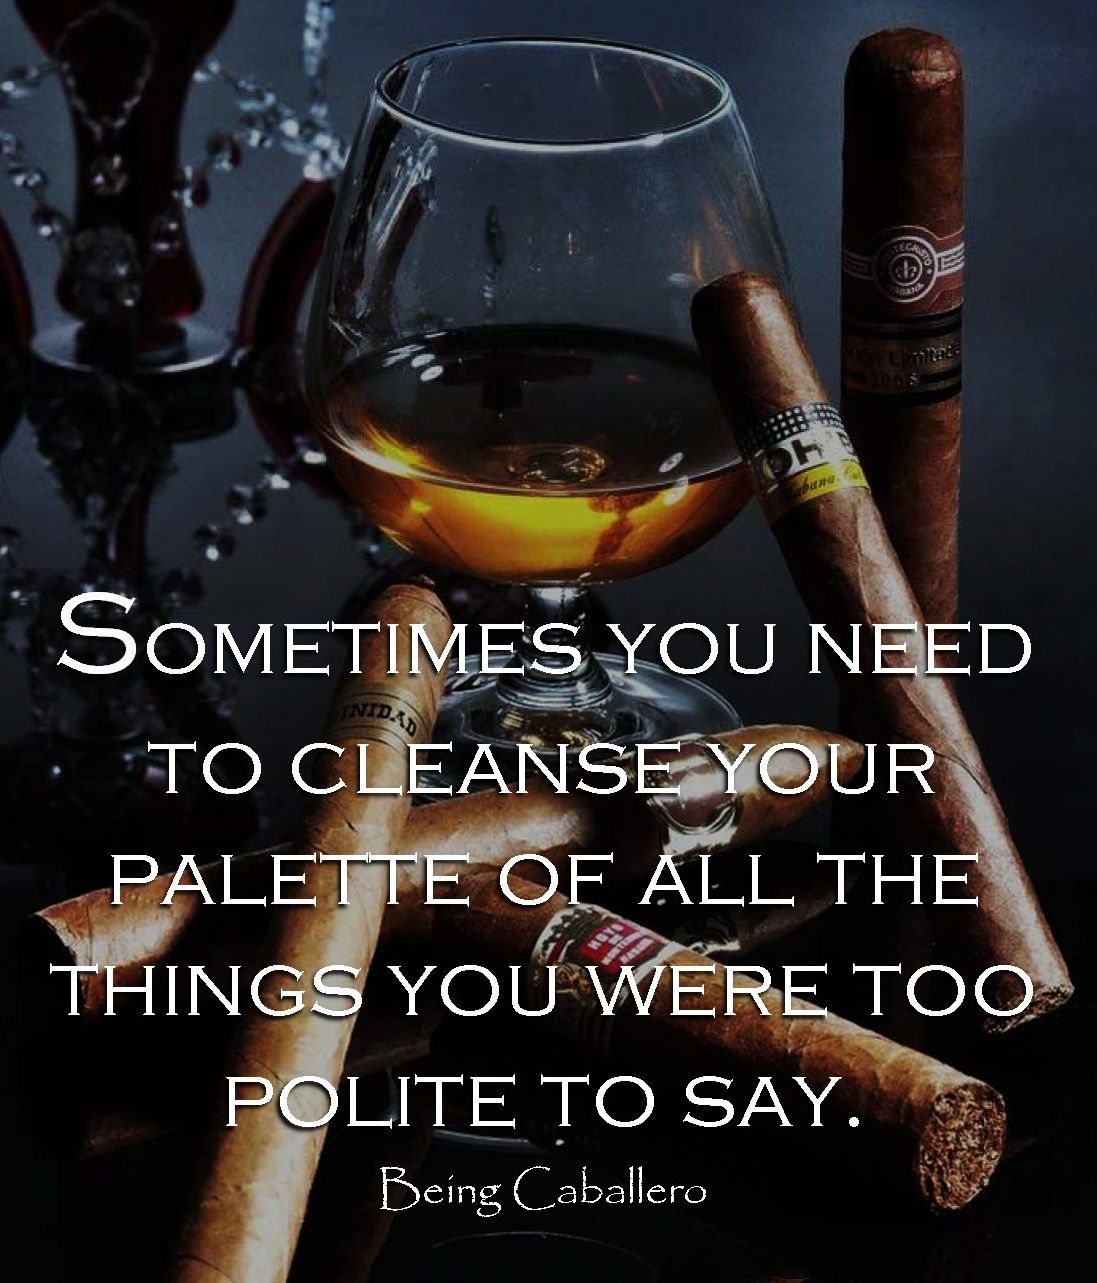 Holding Your Liquor Cigar Quotes Whiskey Quotes Cigars And Whiskey